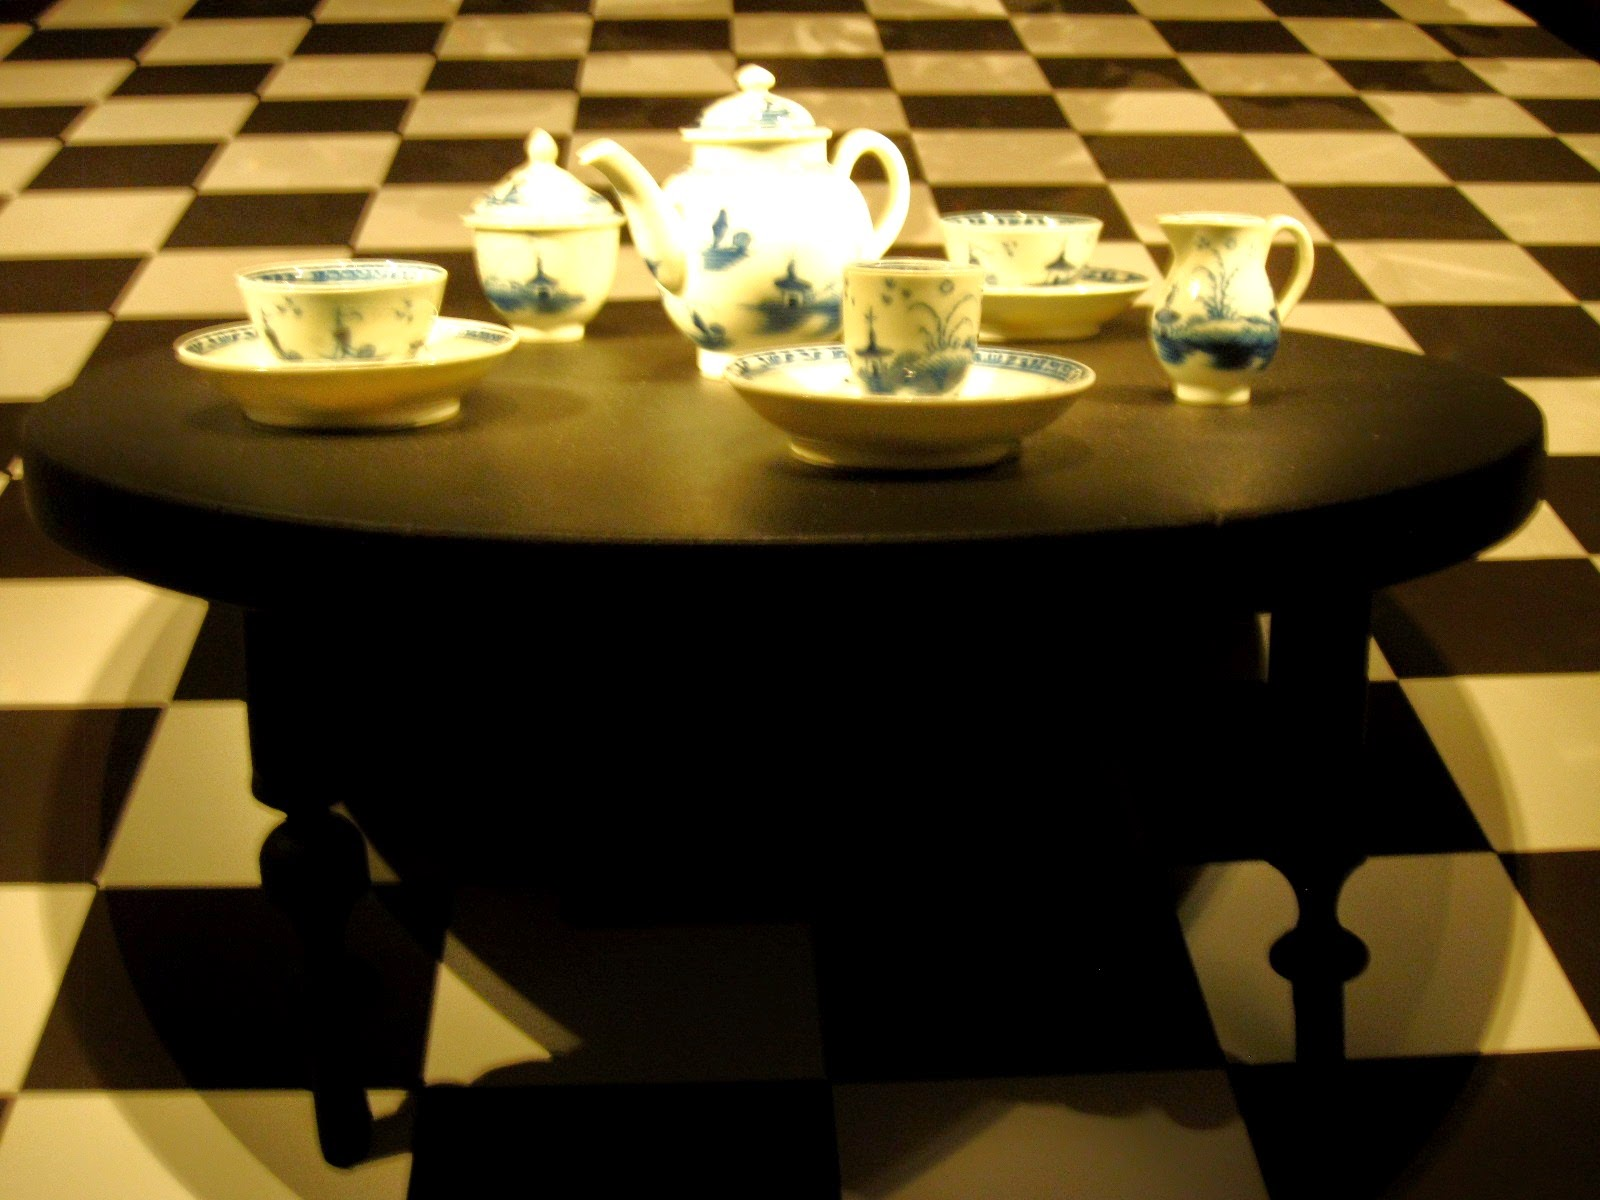 Miniature tea set on display in a museum, on a miniature antique table